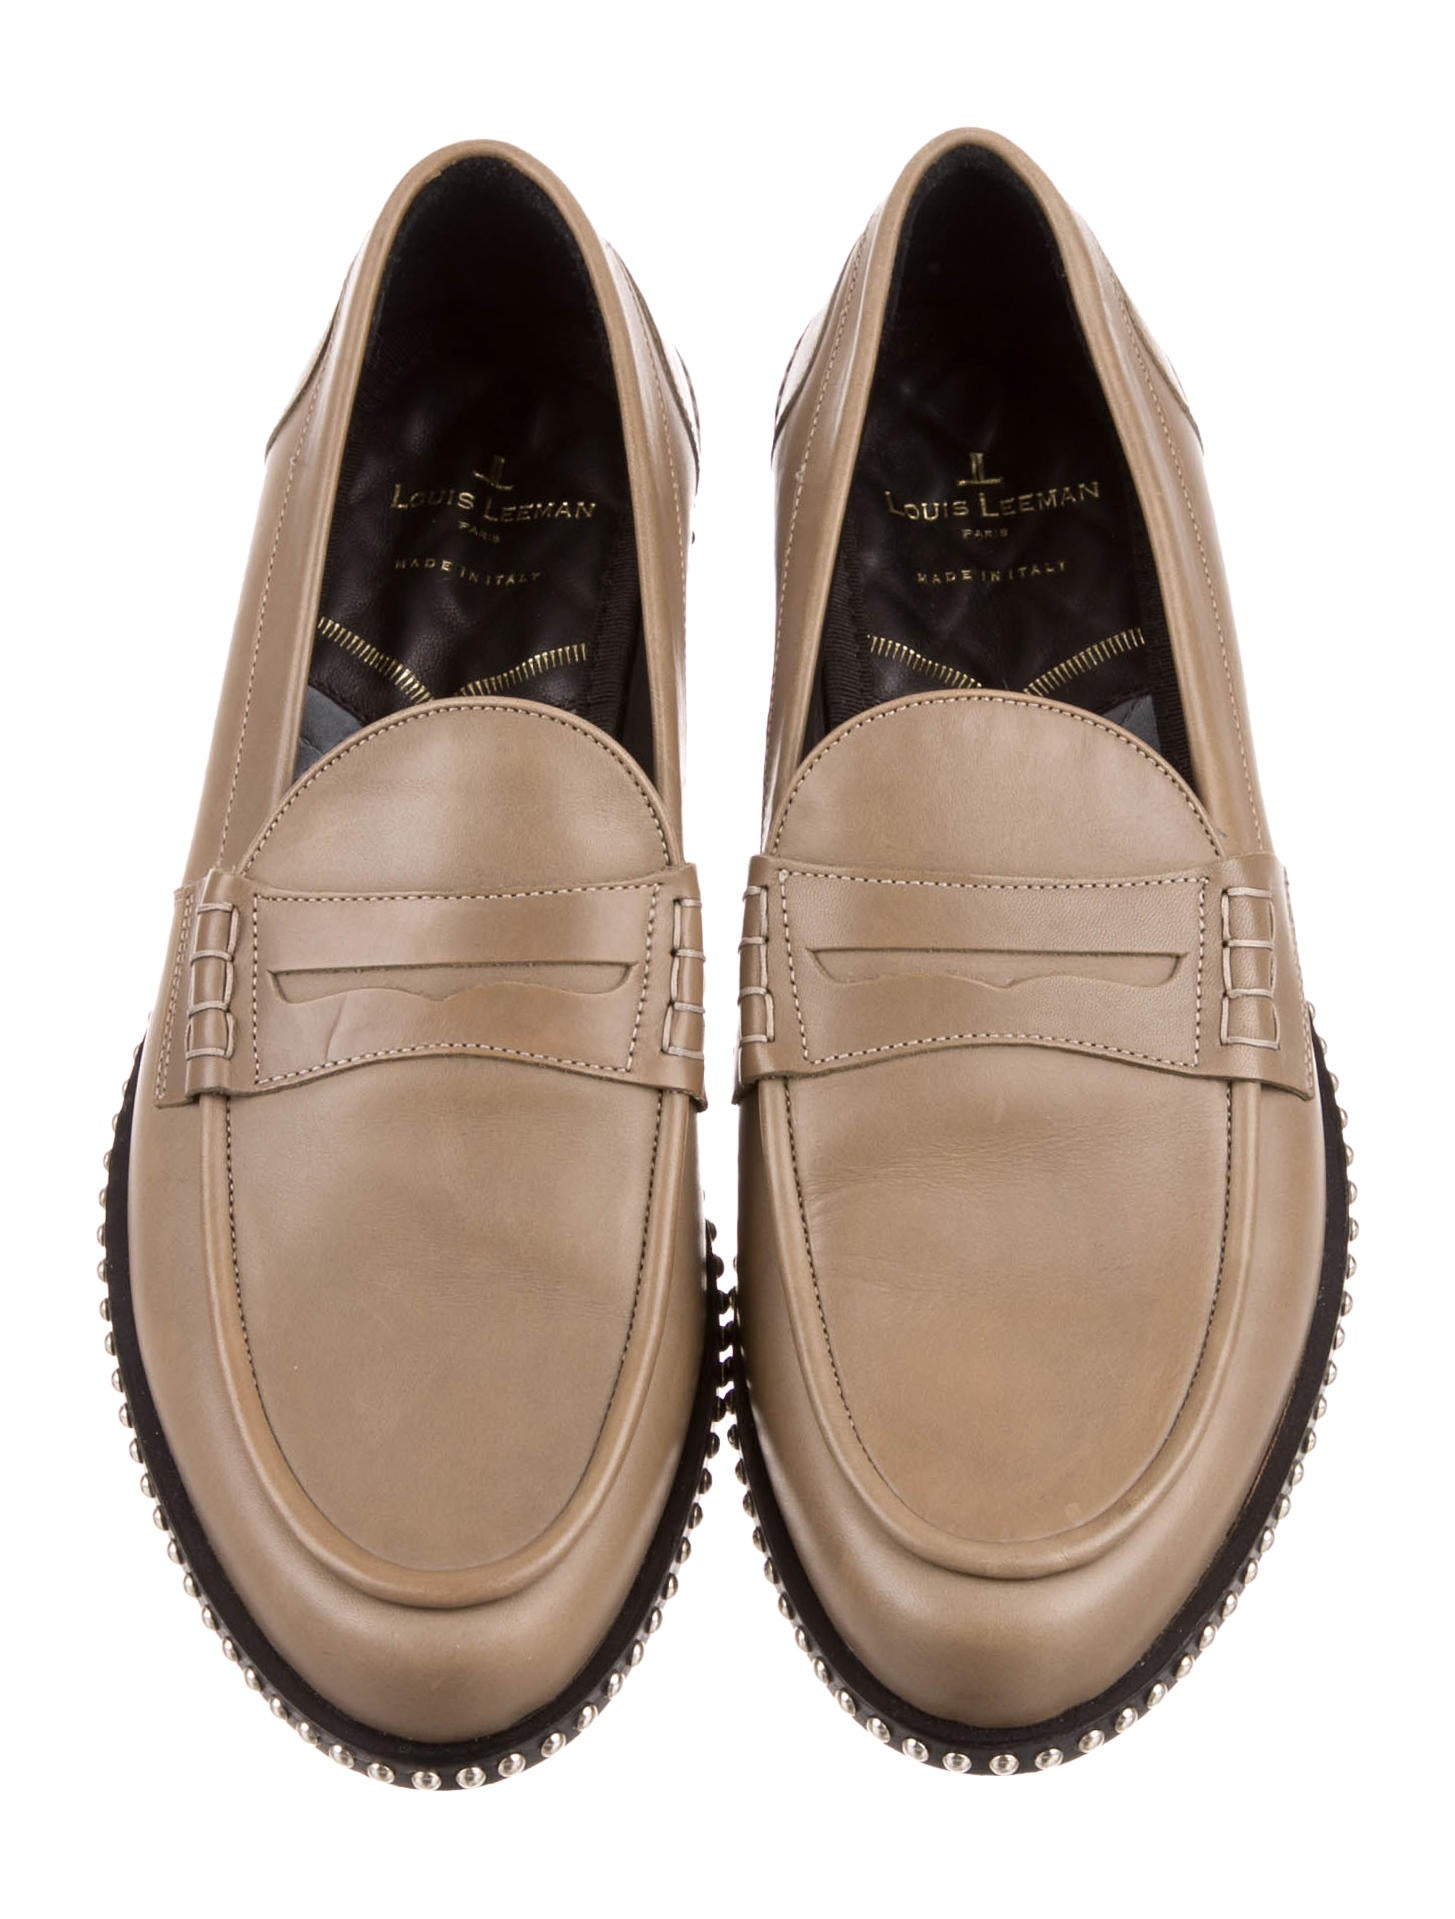 Taja Studded Leather Loafers. $ HIRAETH Arbus Studded Leather Loafers. $ HIRAETH Louise Faux-Leather Loafers. $ Sies Marjan Adele Stamped Patent Leather Penny Loafers. $ LEANDRA MEDINE Wool Double-Monk-Strap Loafers WELCOME TO THE BARNEYS NEW YORK PRIVATE JEWELRY SALE.